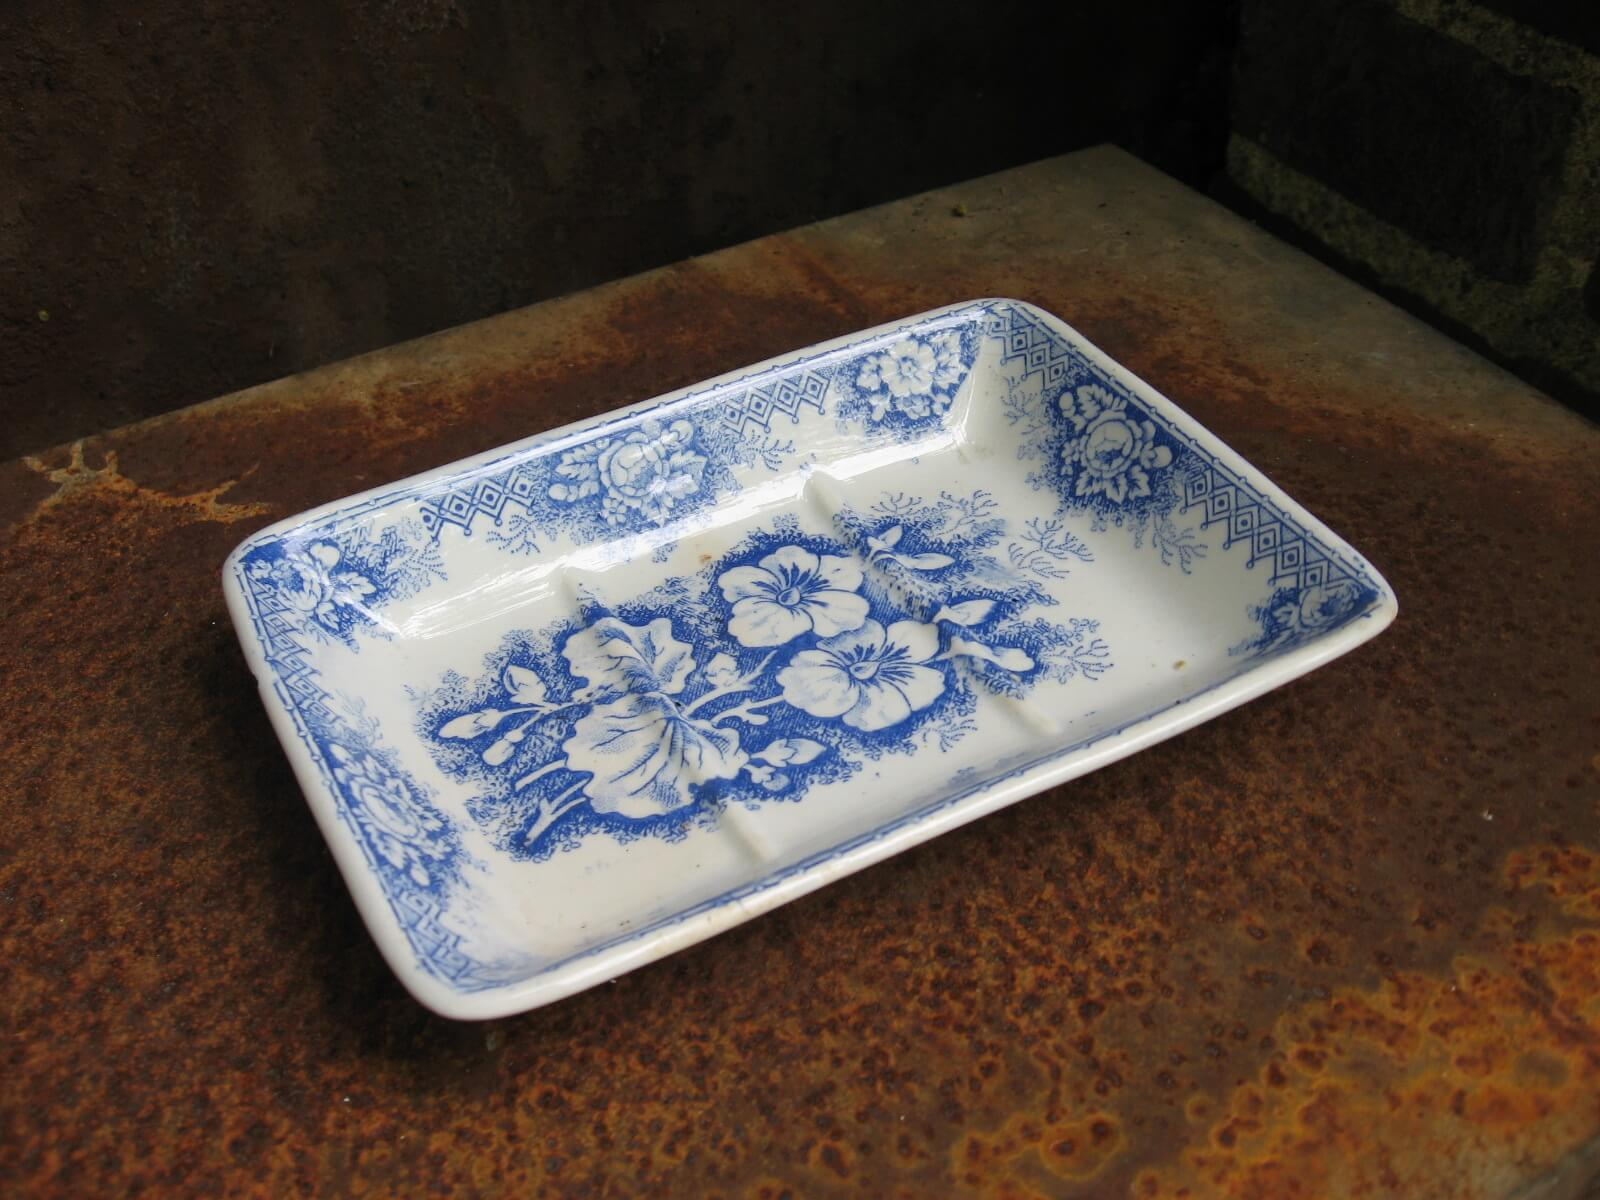 soap dish blue white jardiniere hamage nord at PumpjackPiddlewick